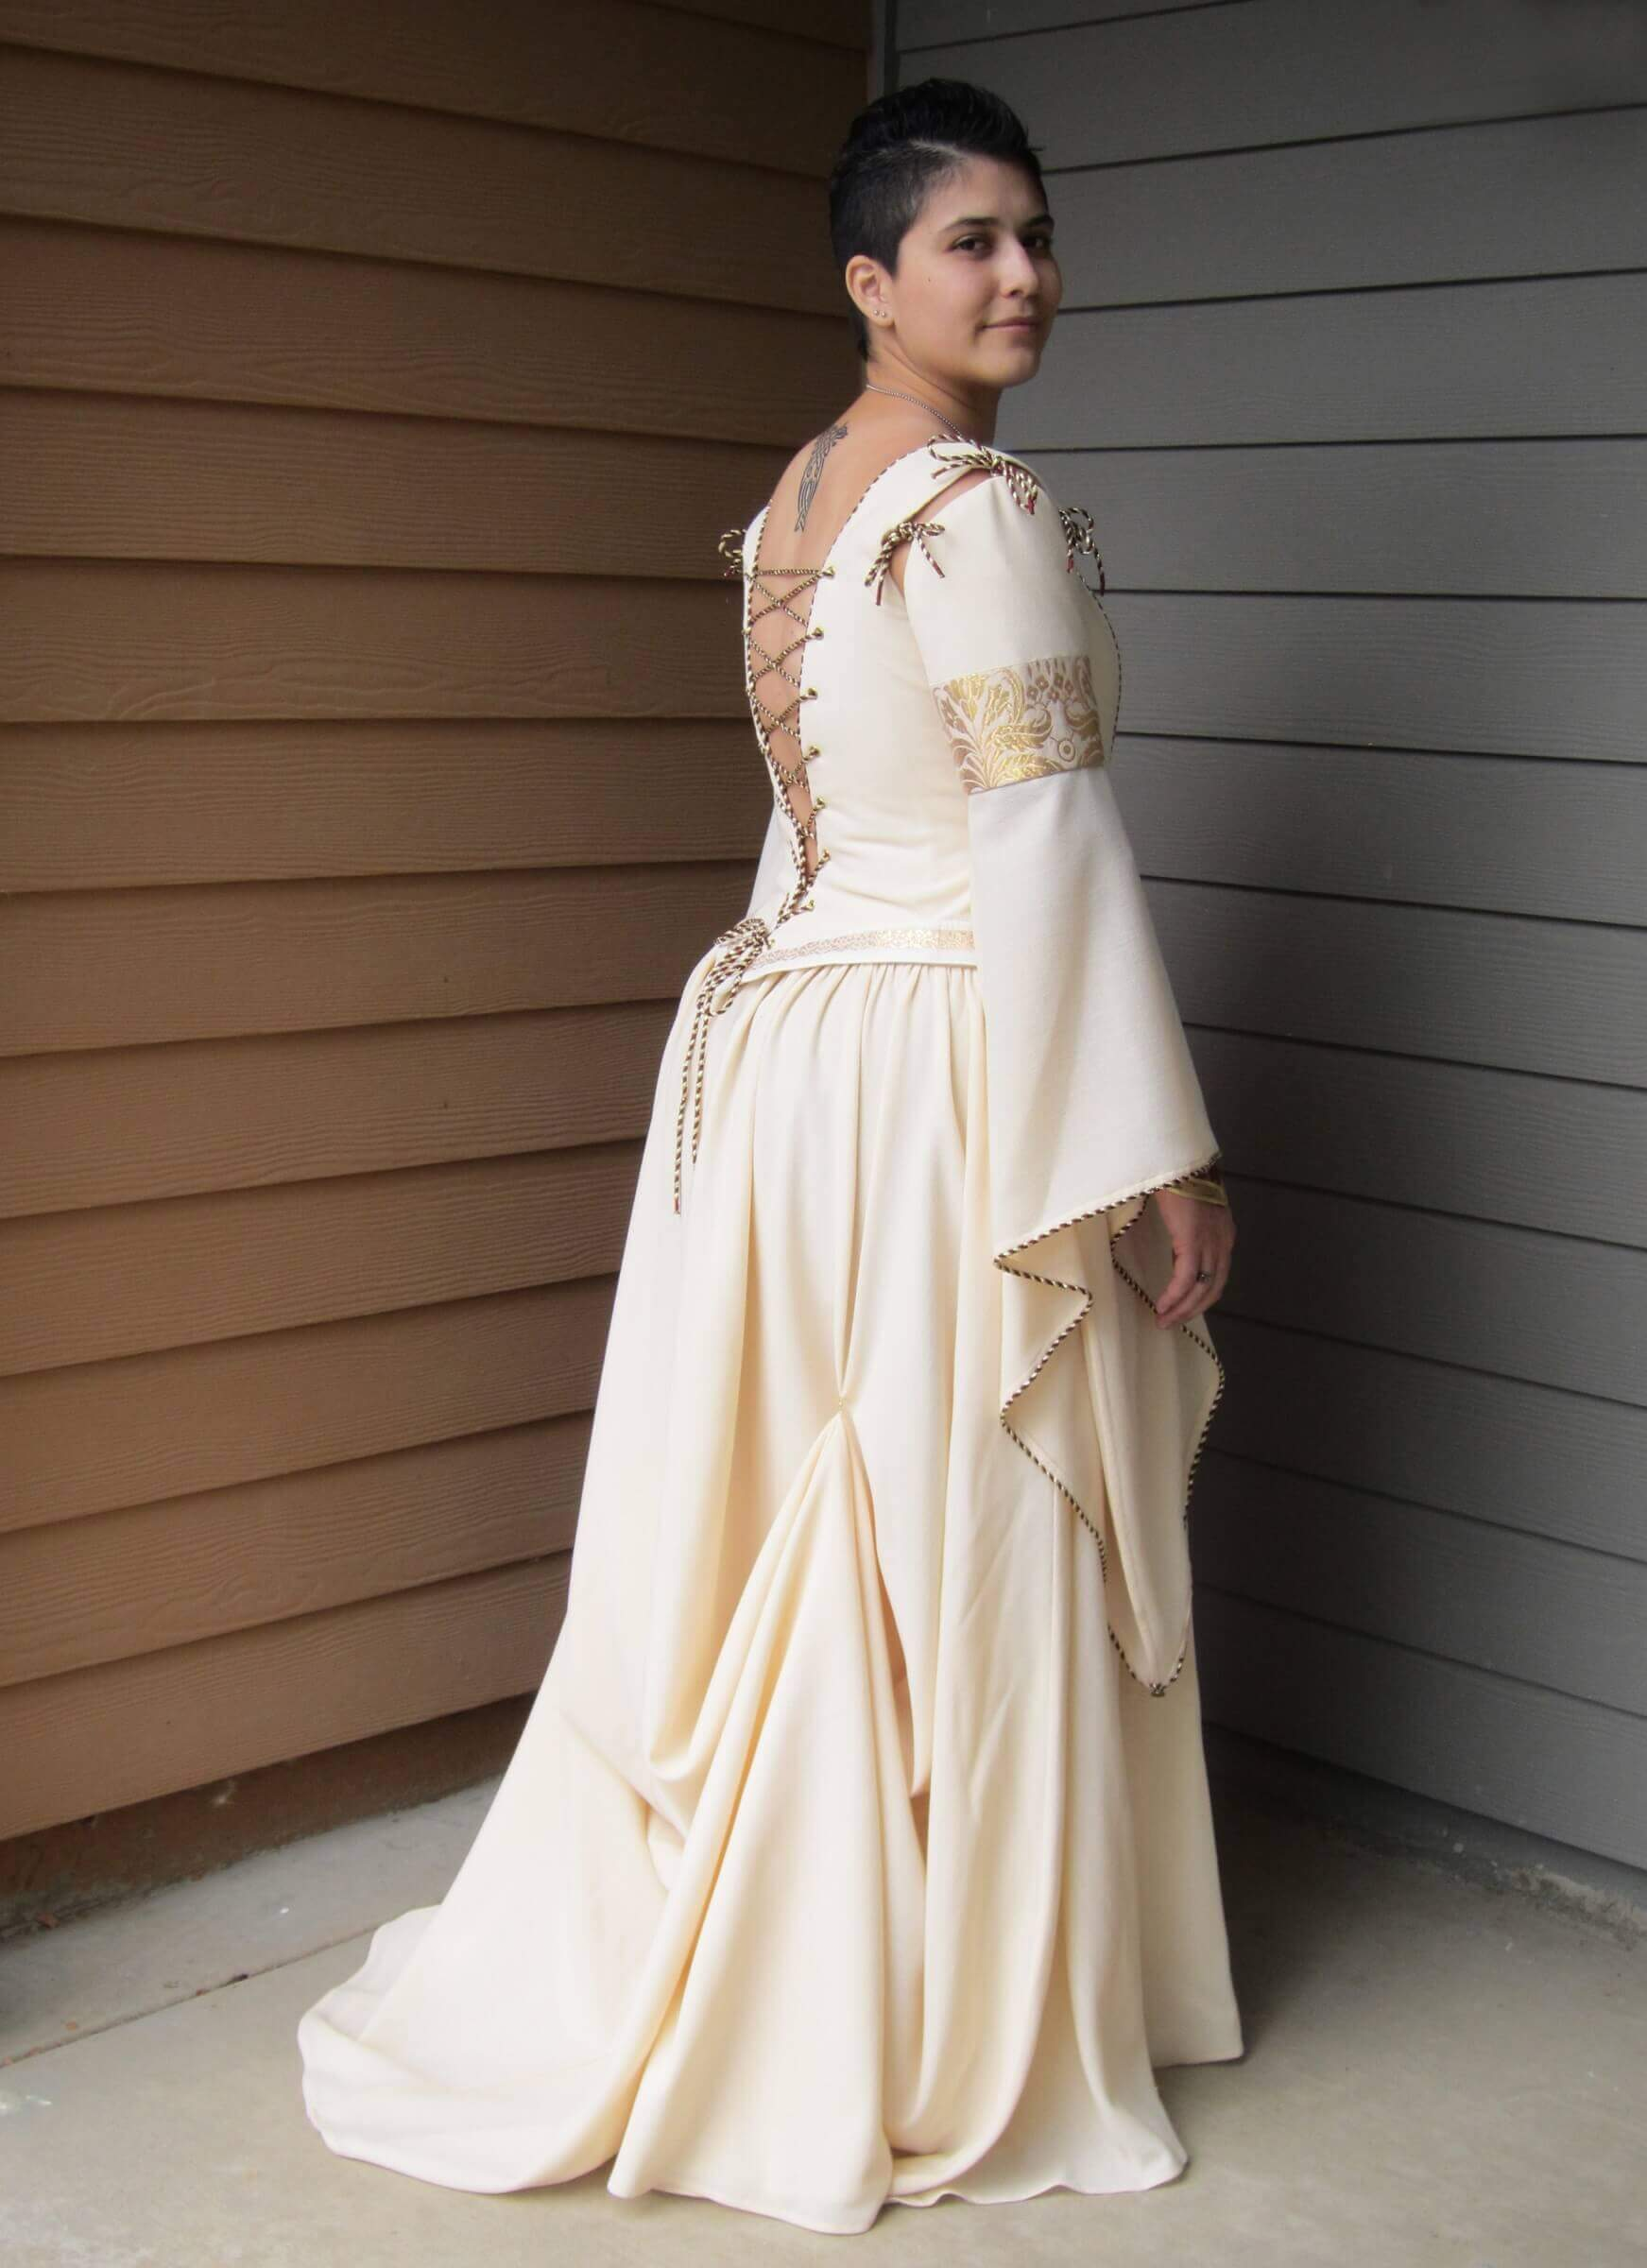 custom made wedding dress for Jenna by Rebecca Wendlandt